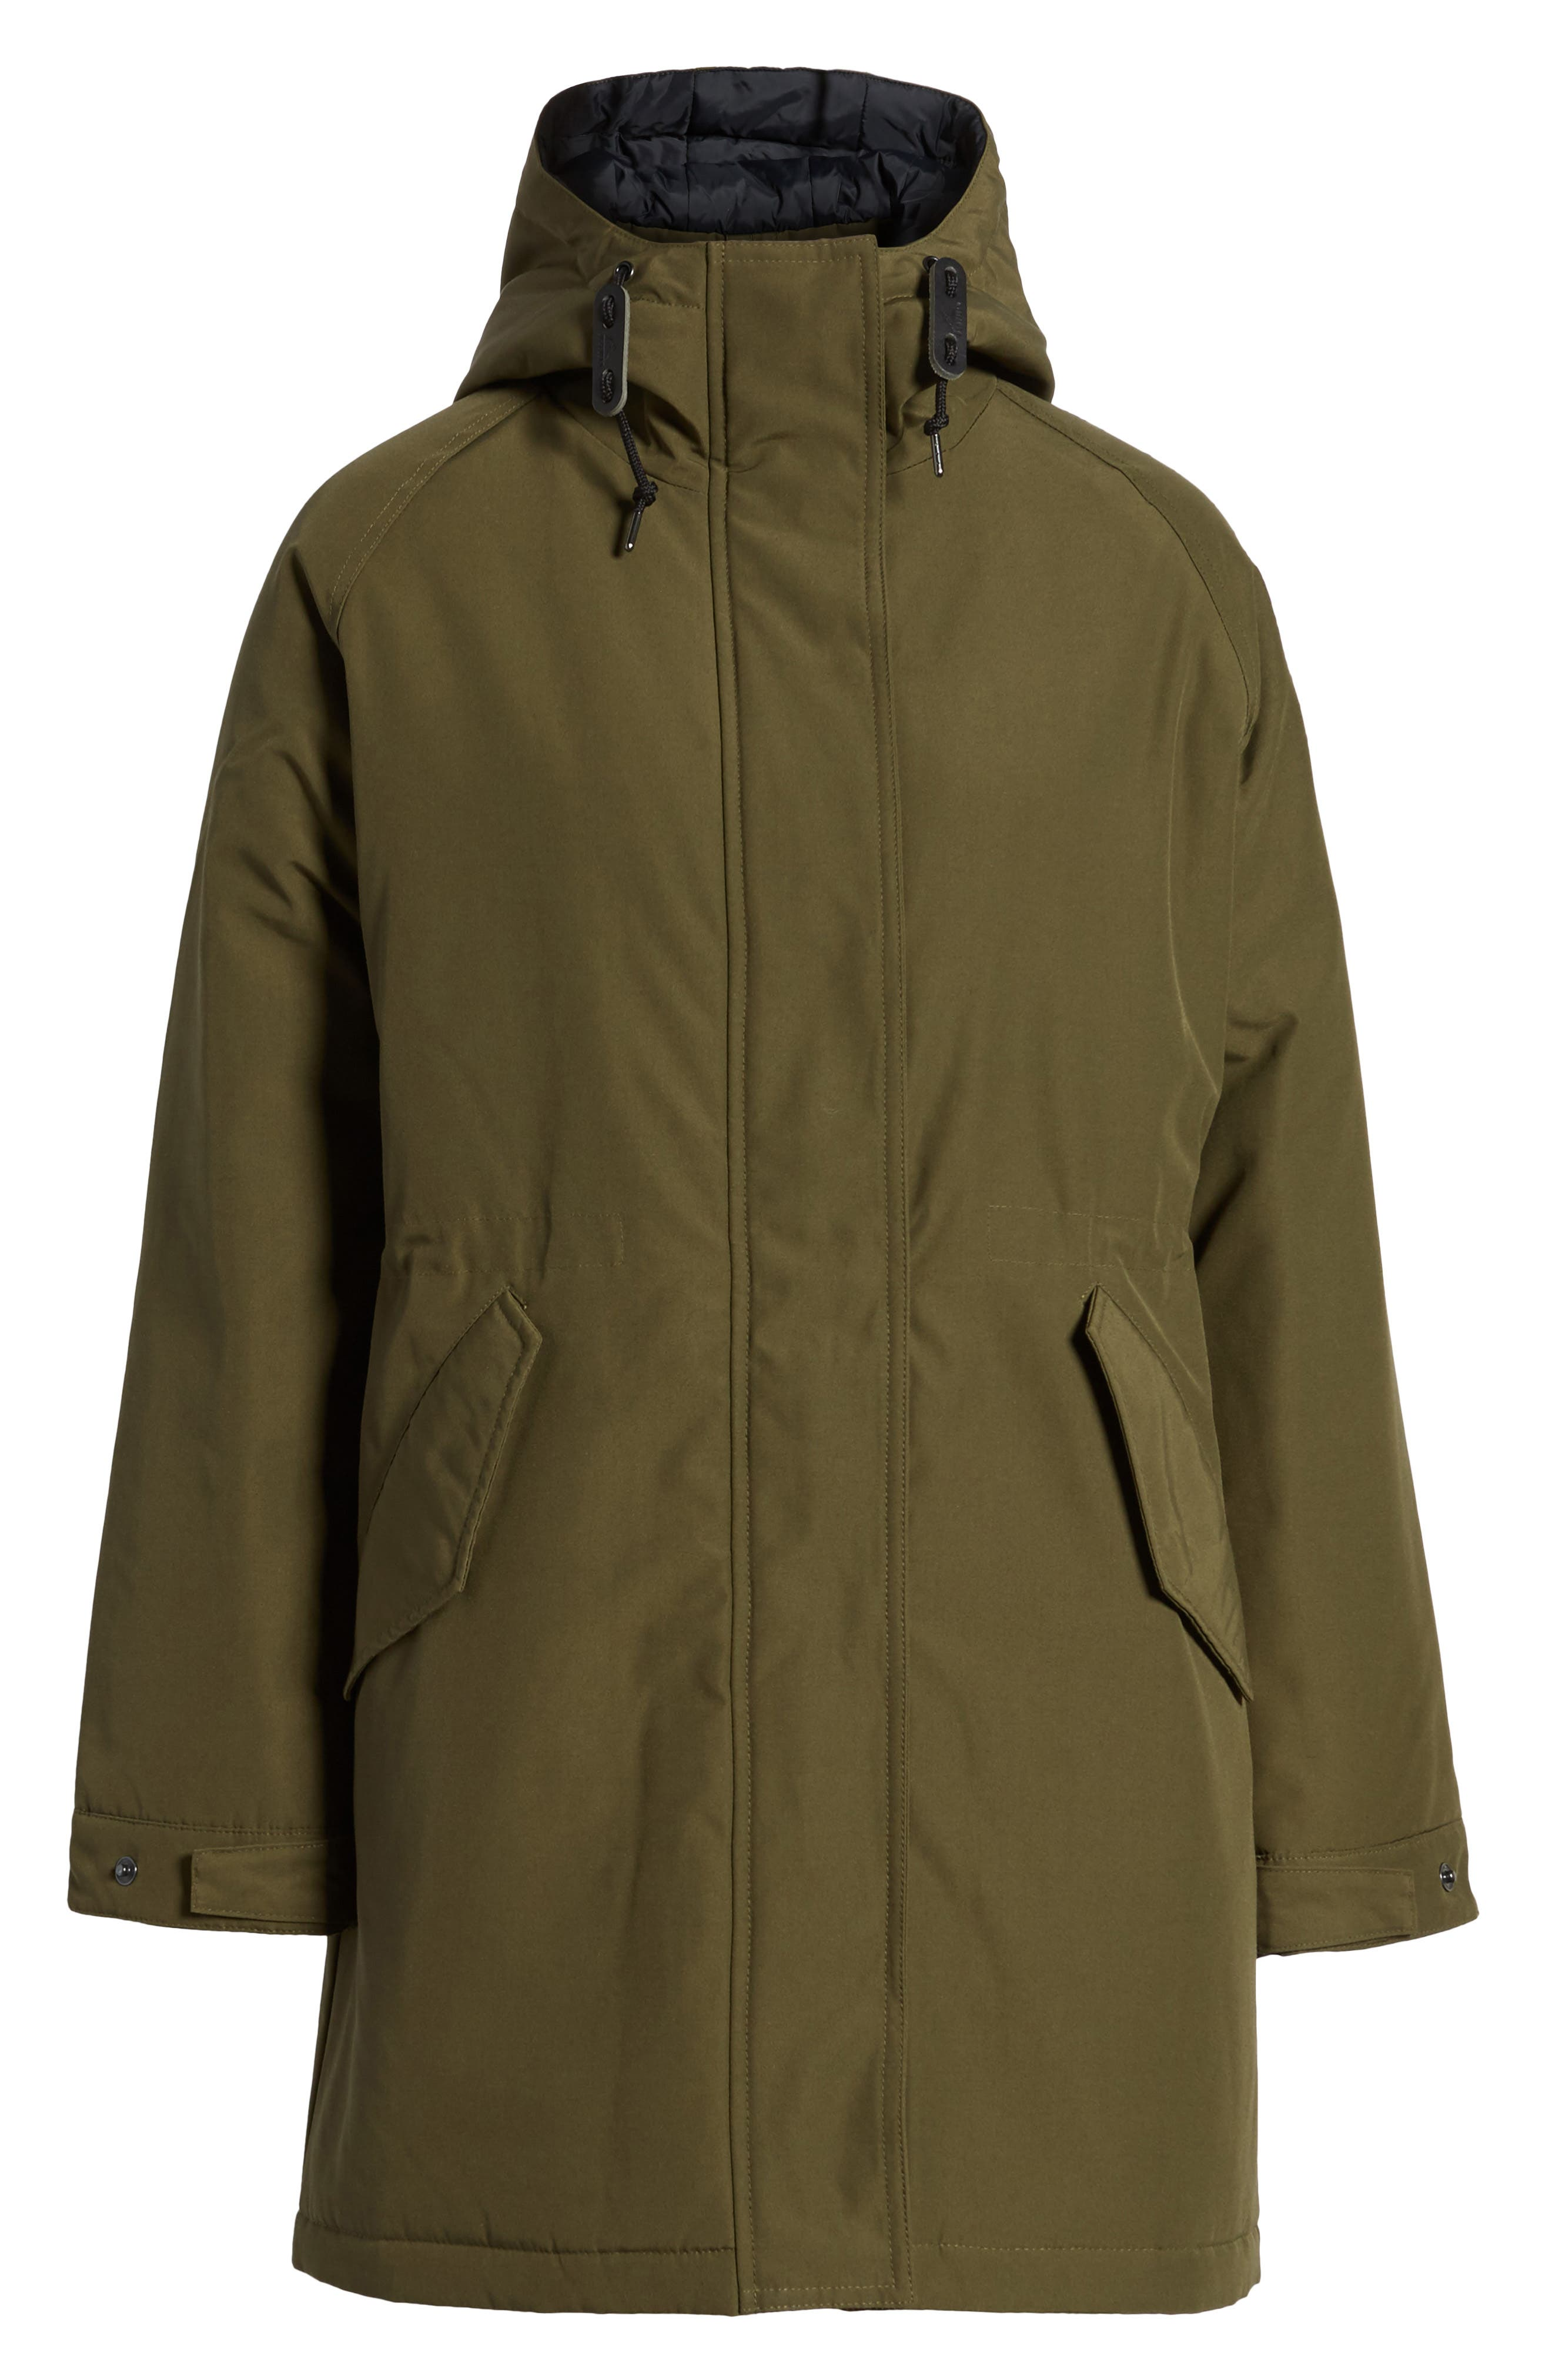 Kingman Hooded Fishtail Parka,                             Alternate thumbnail 5, color,                             307